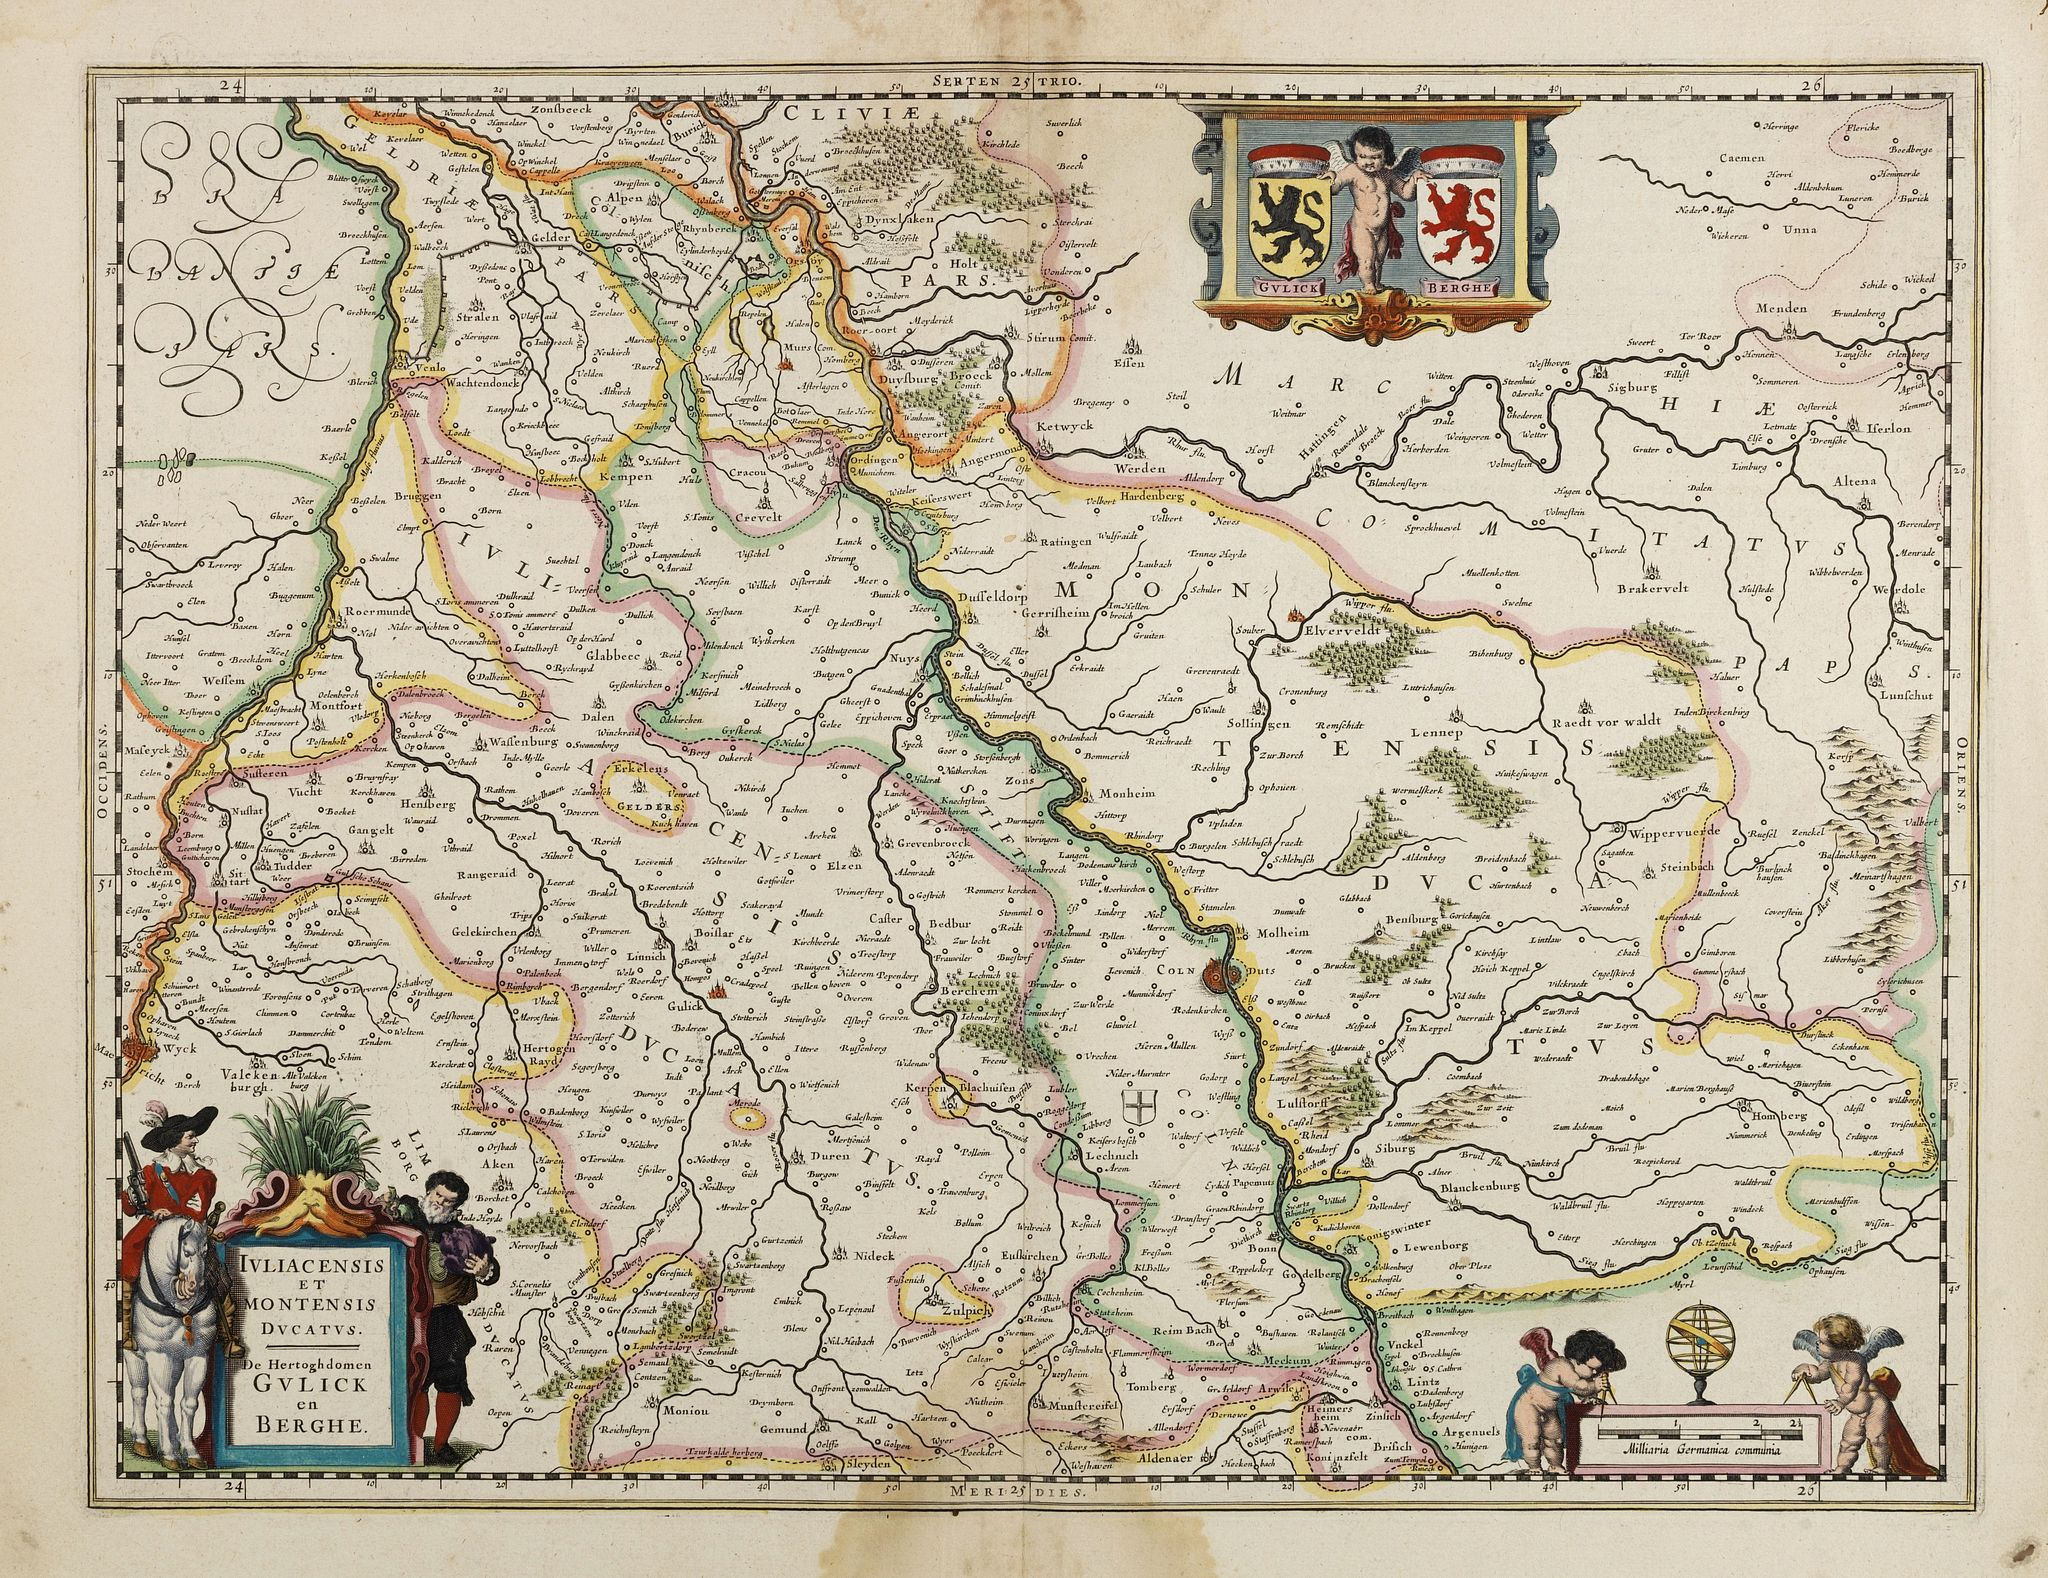 BLAEU, W.,  Juliacensis et Montensis Ducatus/ De Hertoghdomen Gulick. . ., antique map, old maps